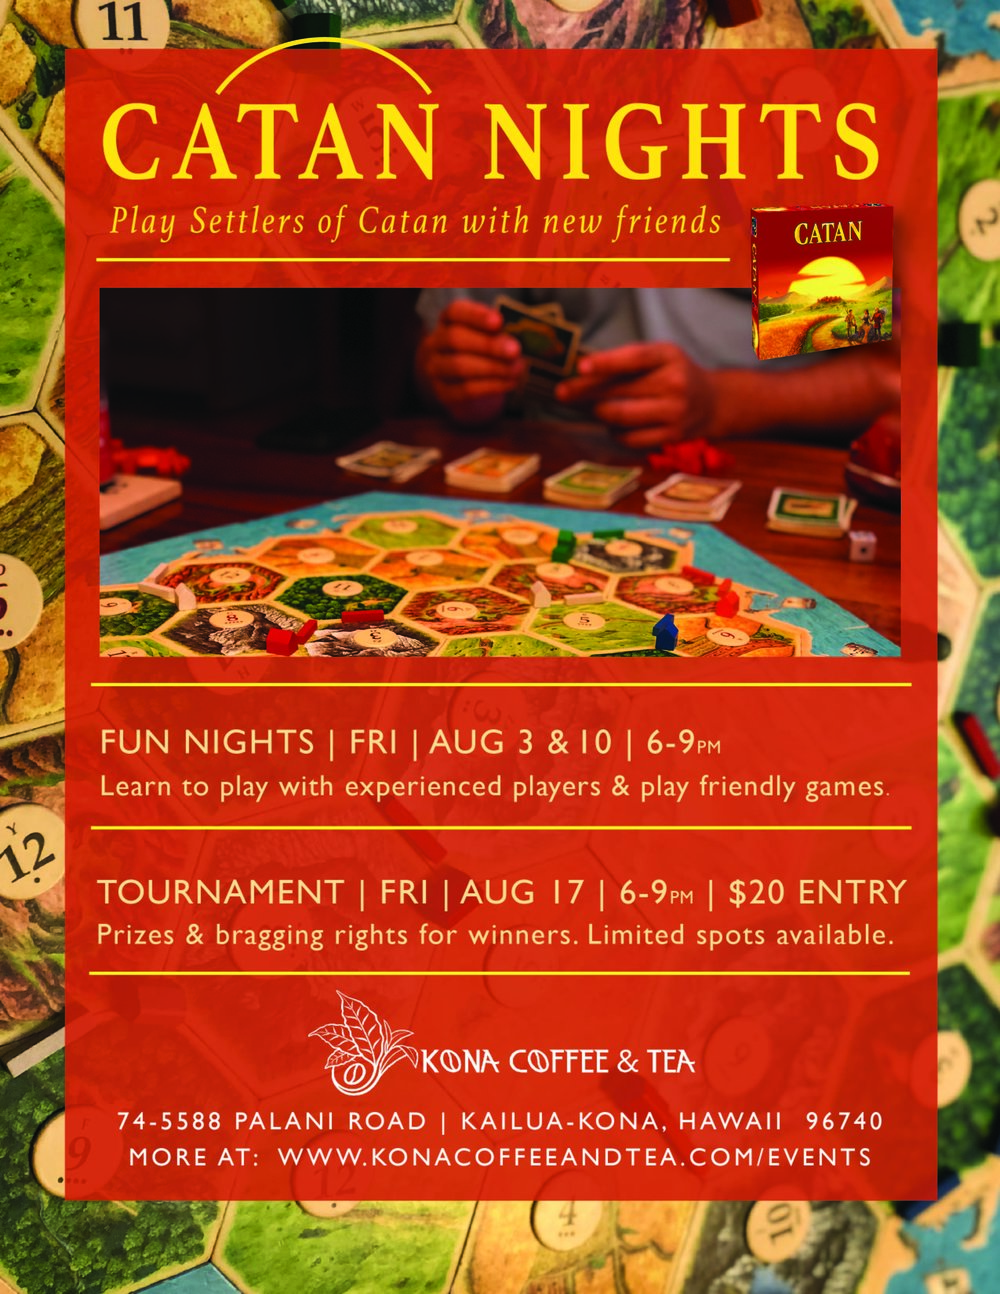 Catan Nights_KCTC_Aug 2018-01-01.jpg